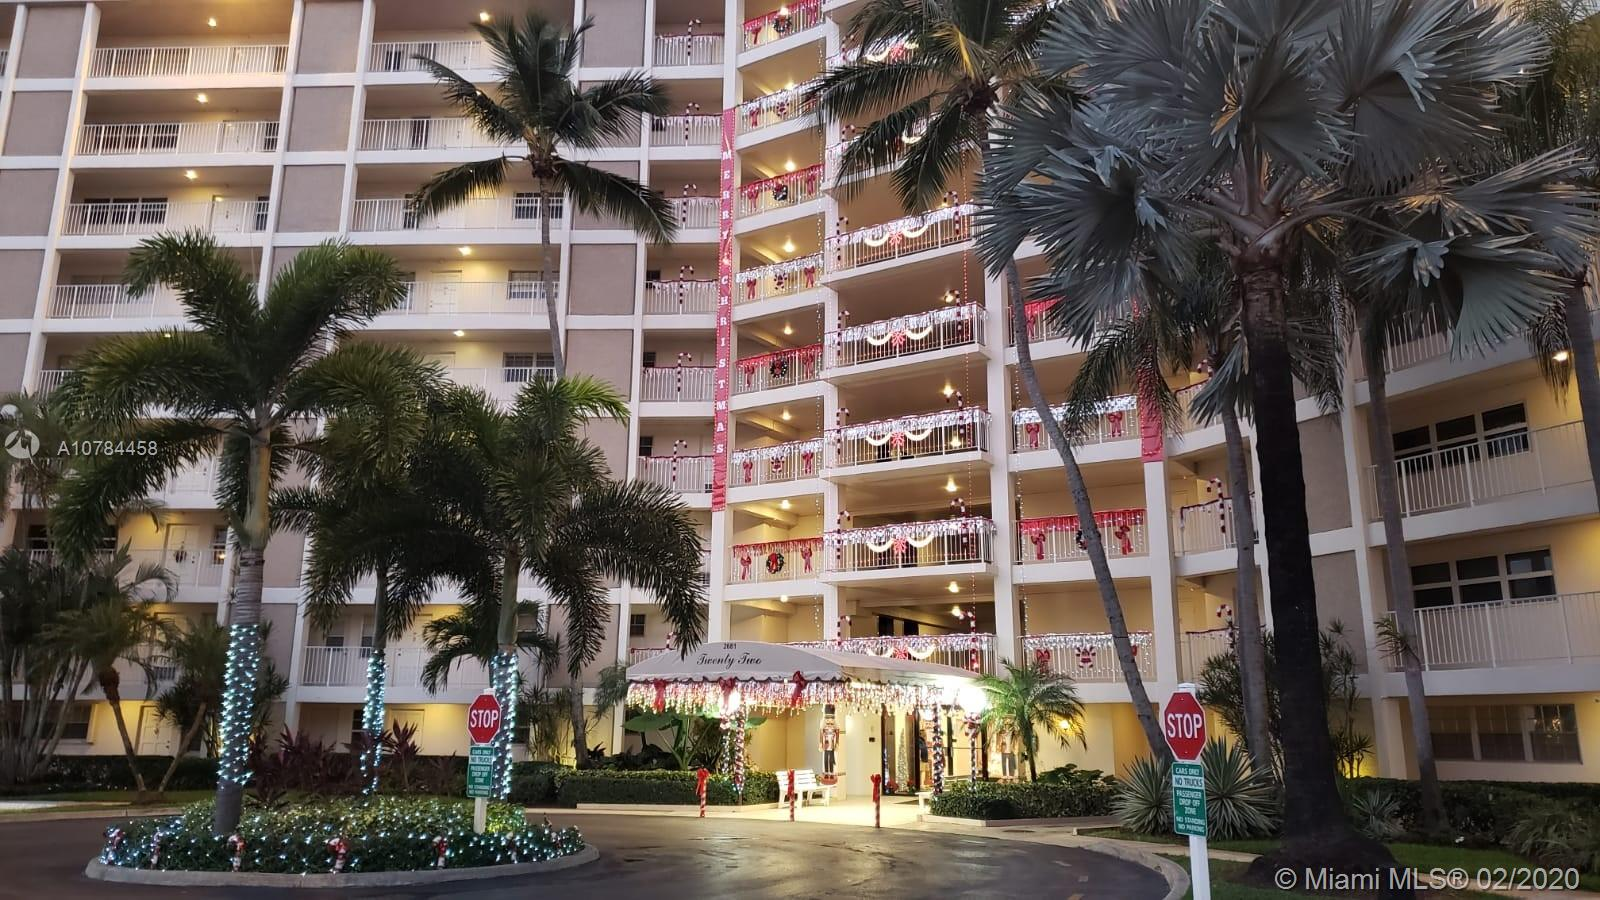 Beatiful apartment in Pompano Beach! Ready to move, owner made lots of improvements. Gorgoeus Marble and wood floors. Granite counter top in kitchen. Must see! Maintenance includes, water, trash, basic cable and internet! 20% MINIMUM DOWN PAYMENT REQUIRED BY ASSOCIATION.